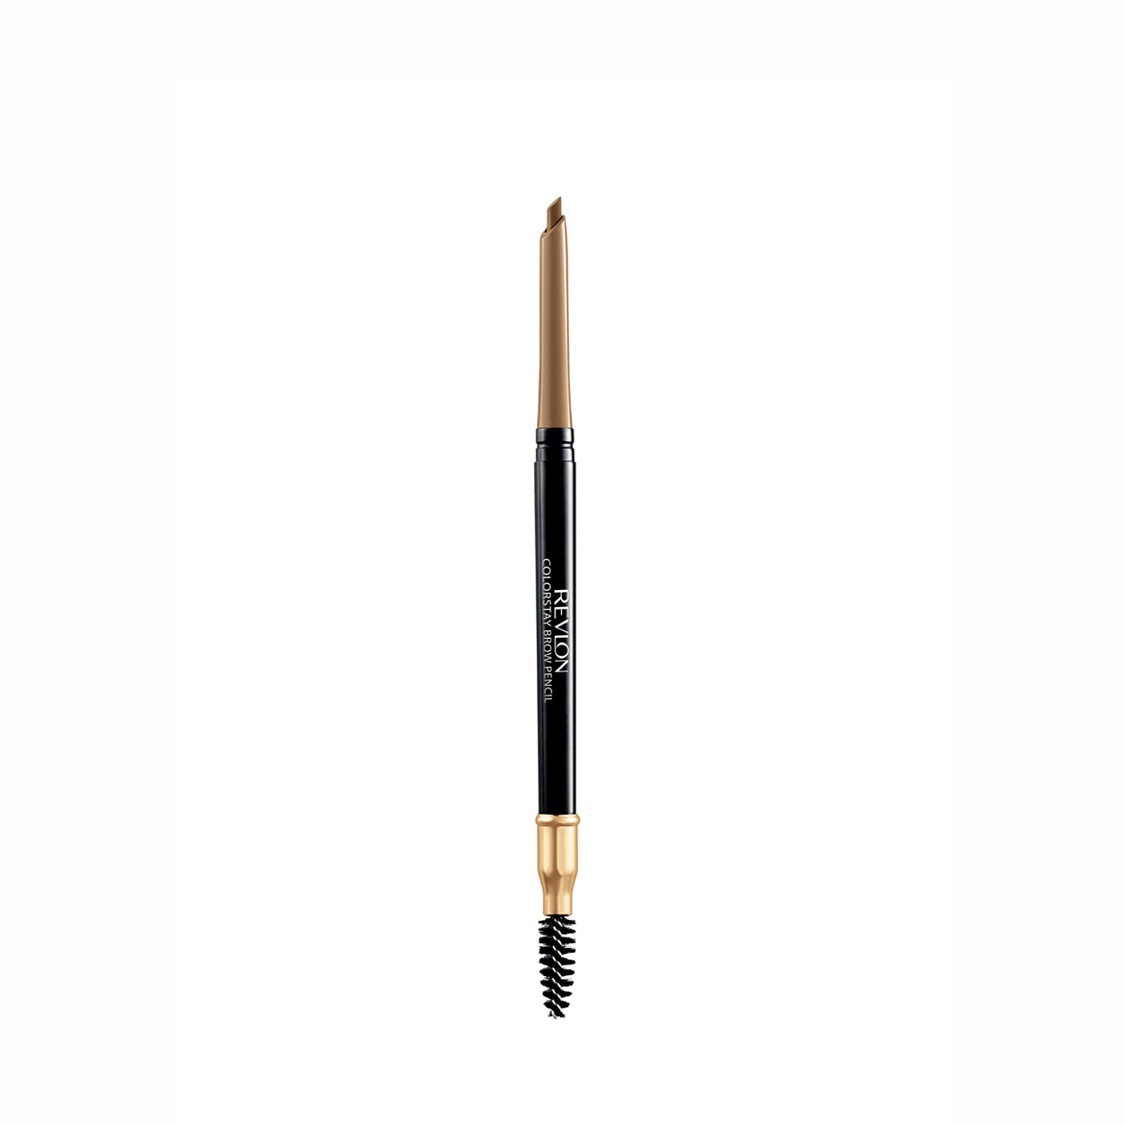 Colourstay Brow Pencil